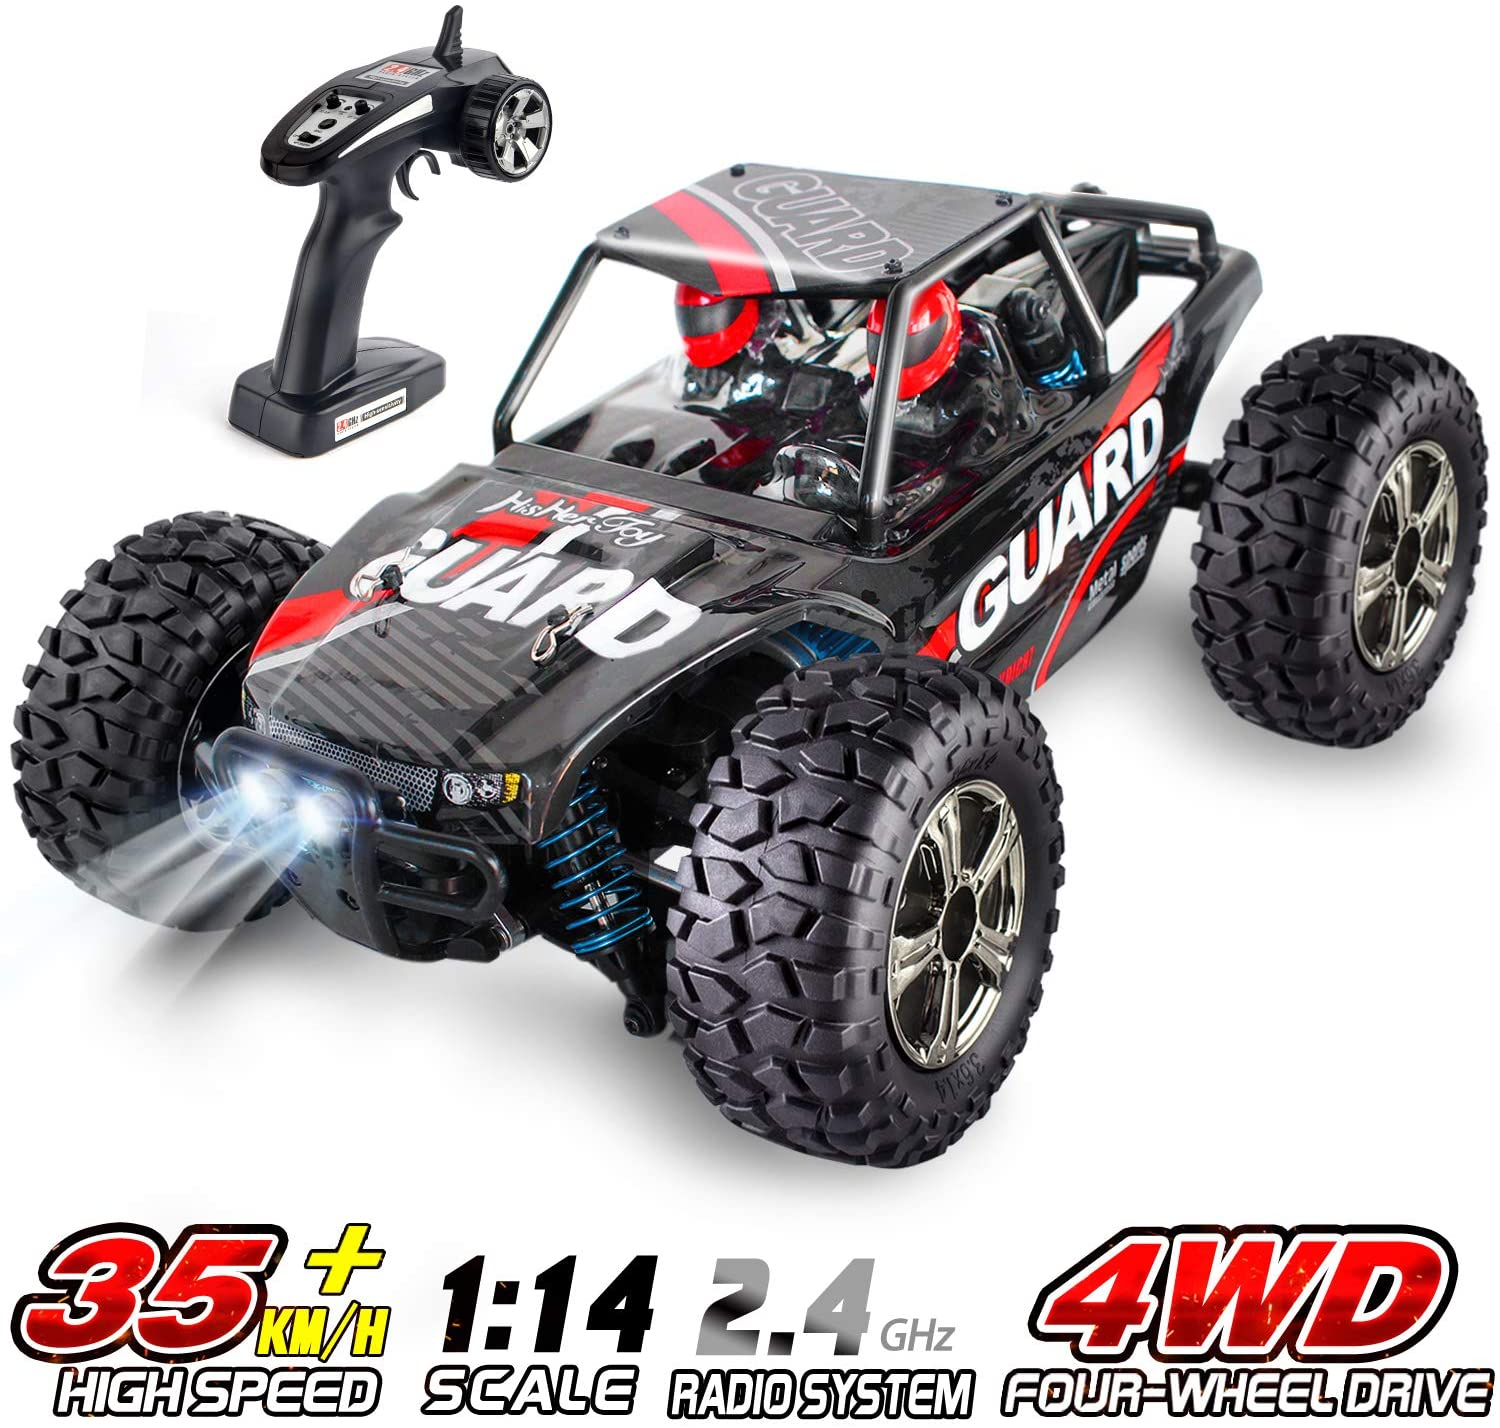 HISTOYE Remote Control Car High Speed Off Road RC Carand Vehicle Buggy Hobby Grade Race Car for Adults(China)